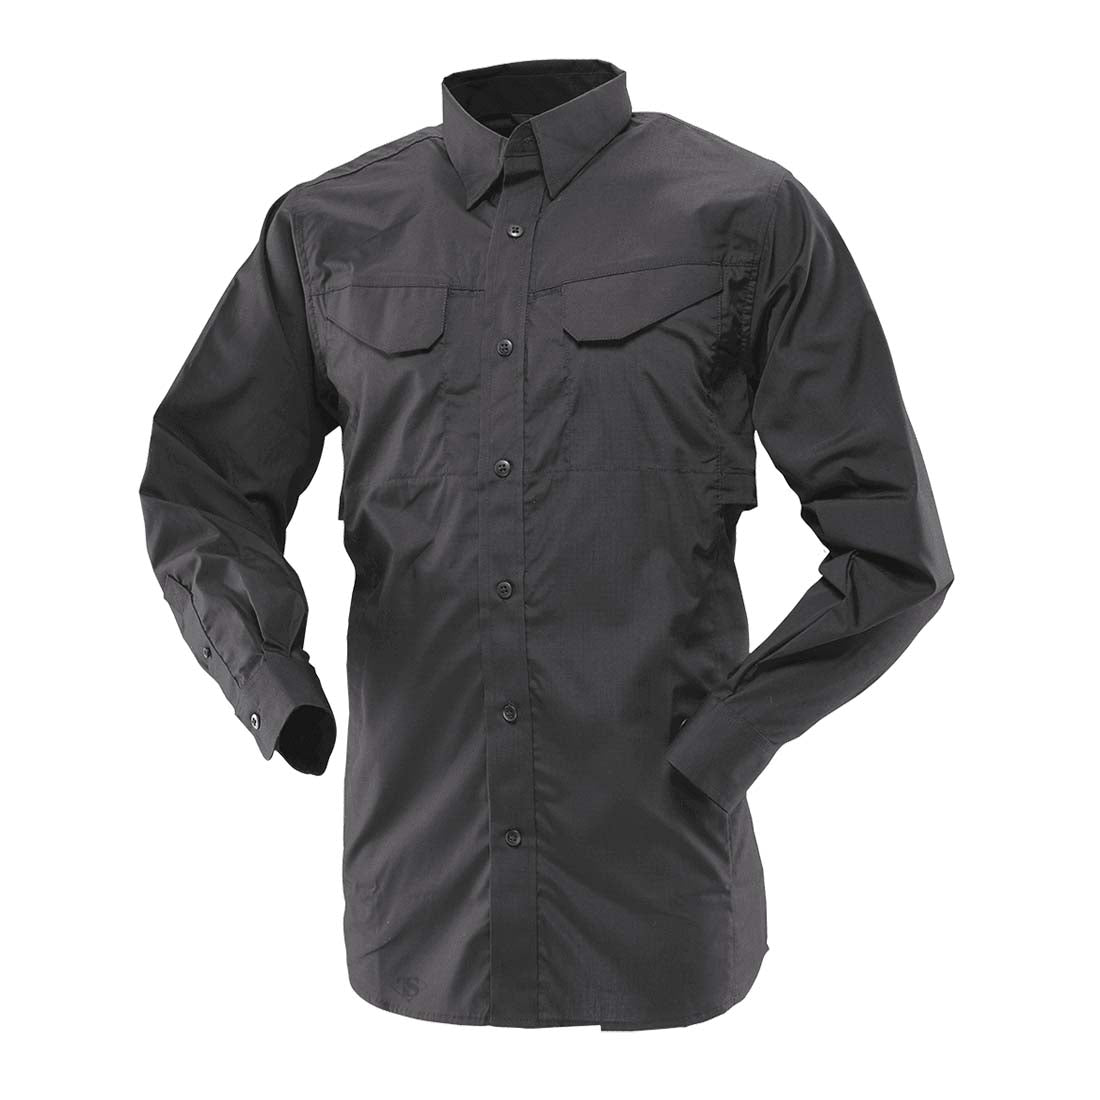 Tru-Spec 1101 Black Men's Ultralight Long Sleeve Field Shirt